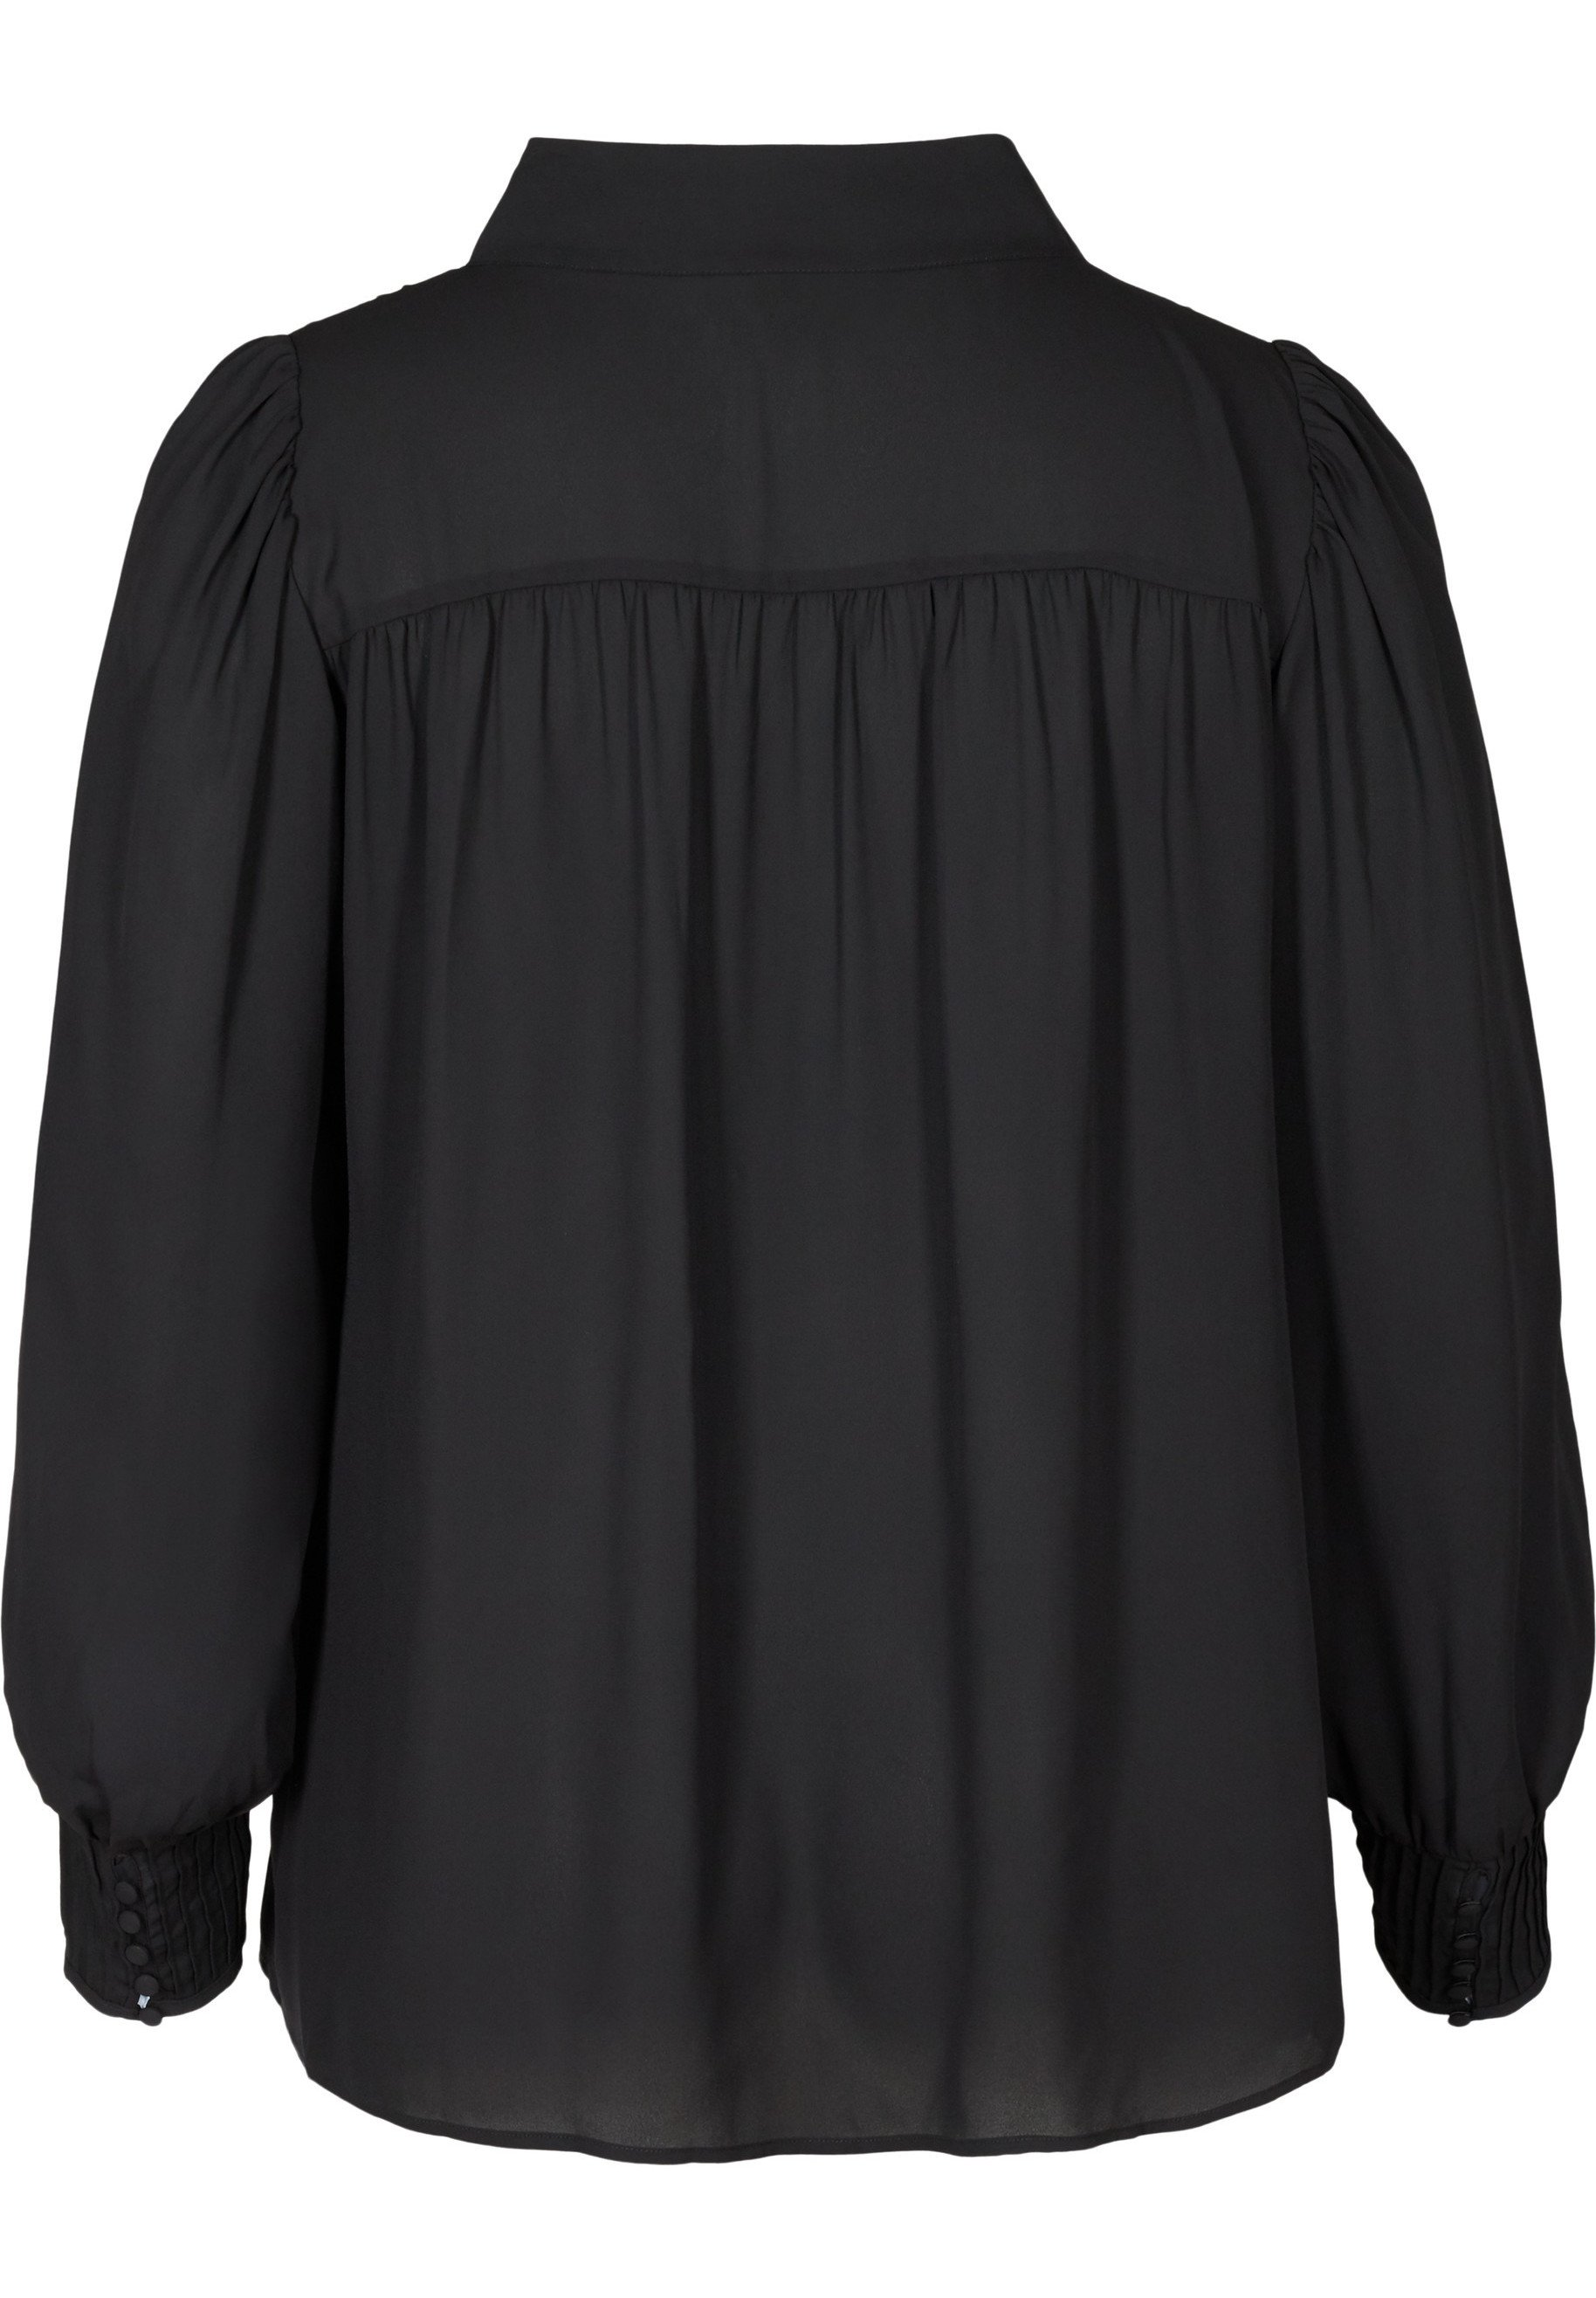 Zizzi WITH TIE DETAIL - Blouse - black - Tops & T-shirts Femme RWmEY